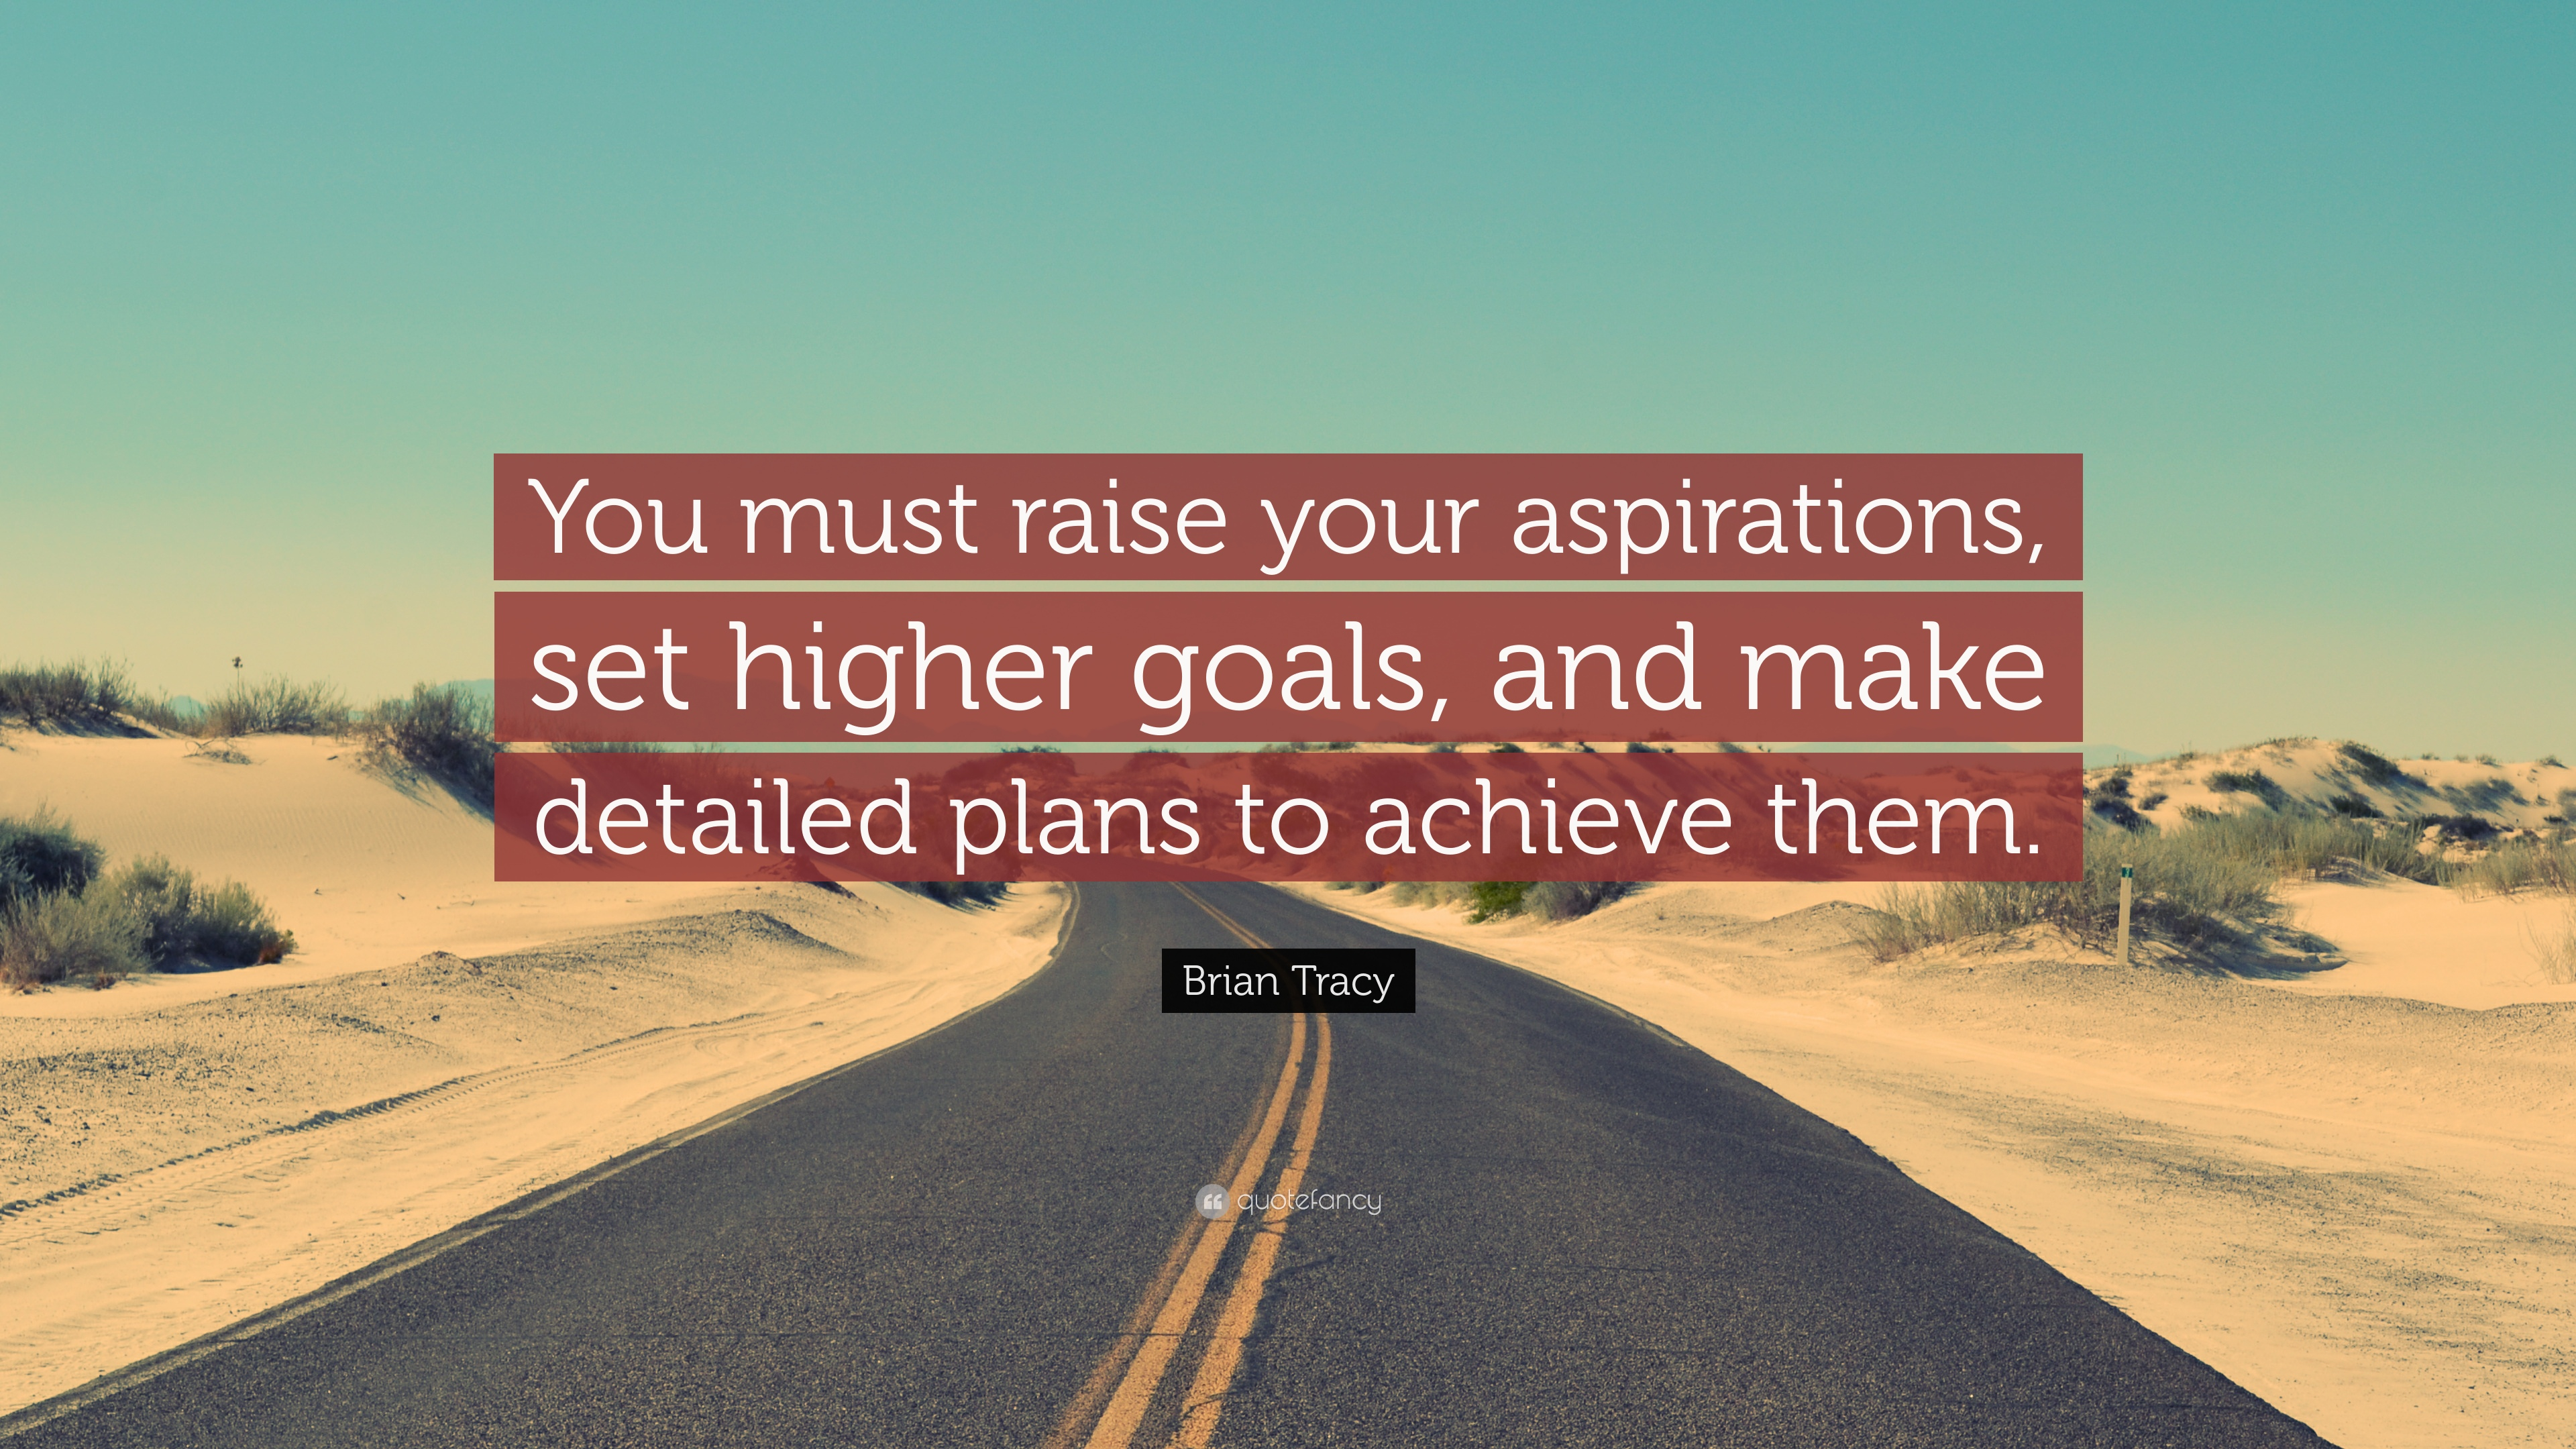 brian tracy quote you must raise your aspirations set higher brian tracy quote you must raise your aspirations set higher goals and